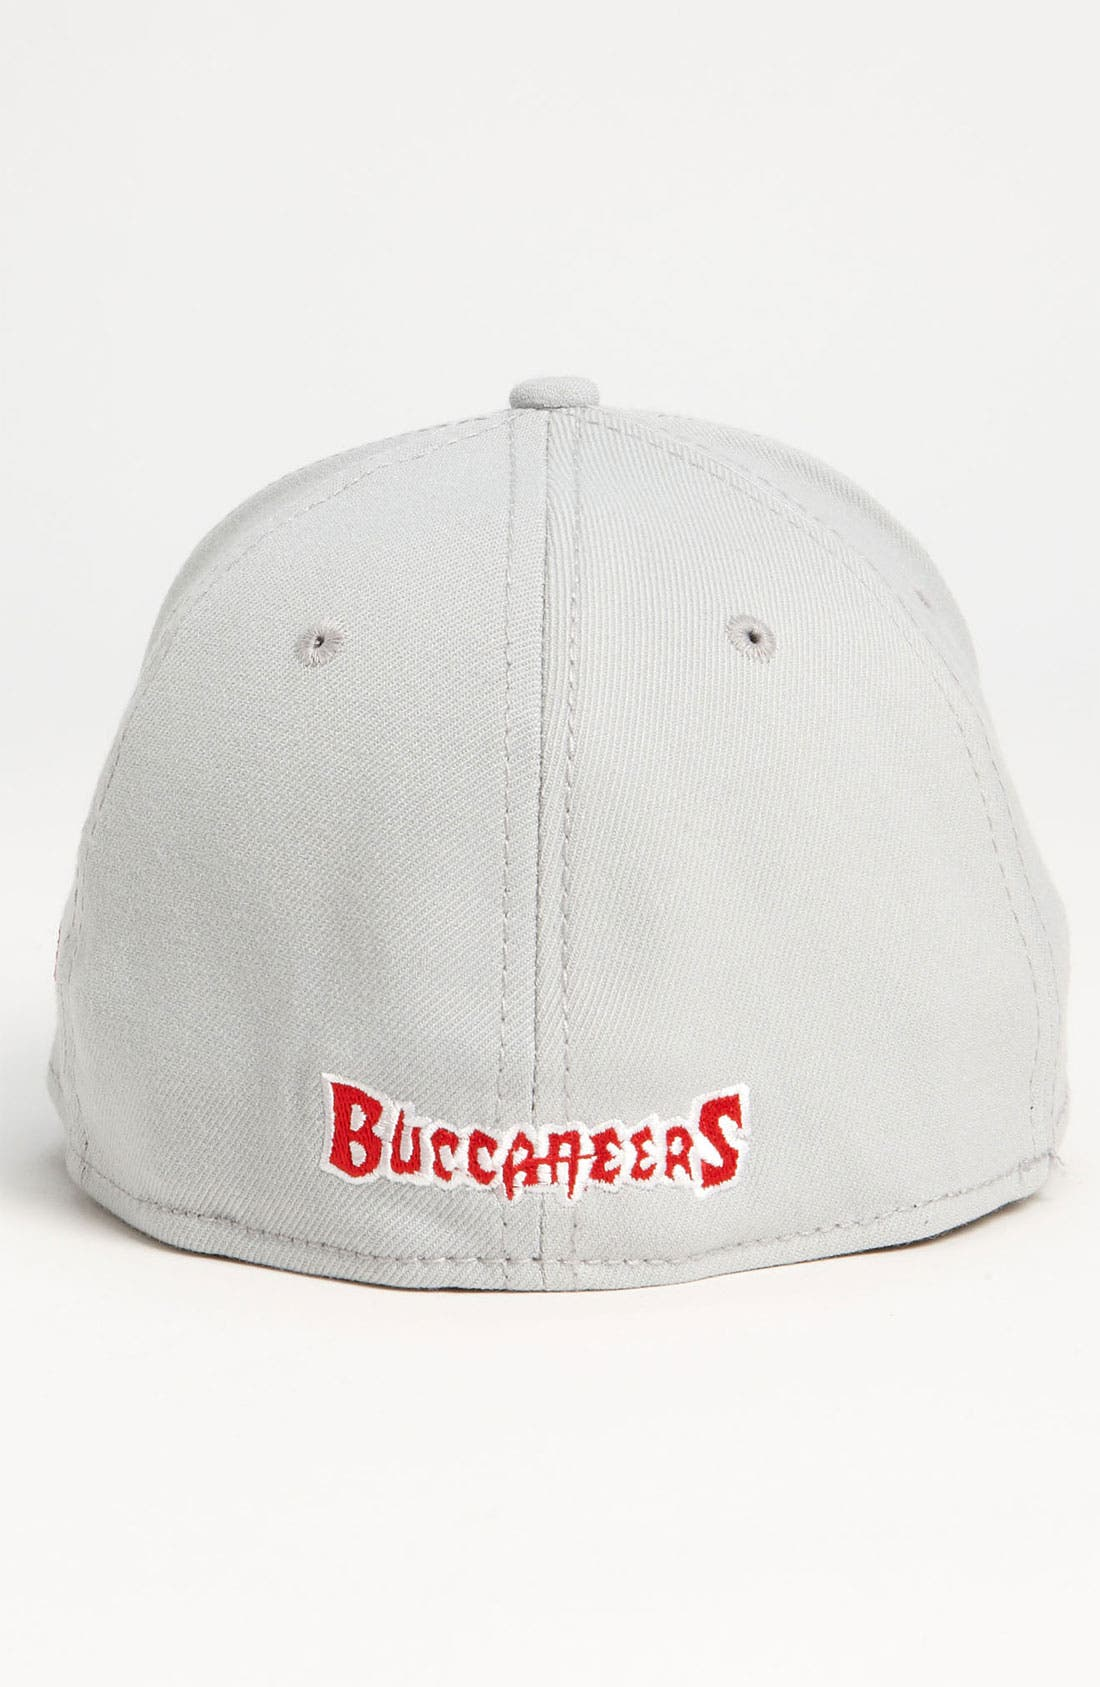 Alternate Image 2  - New Era Cap 'NFL Draft - Tampa Bay Buccaneers' Baseball Cap